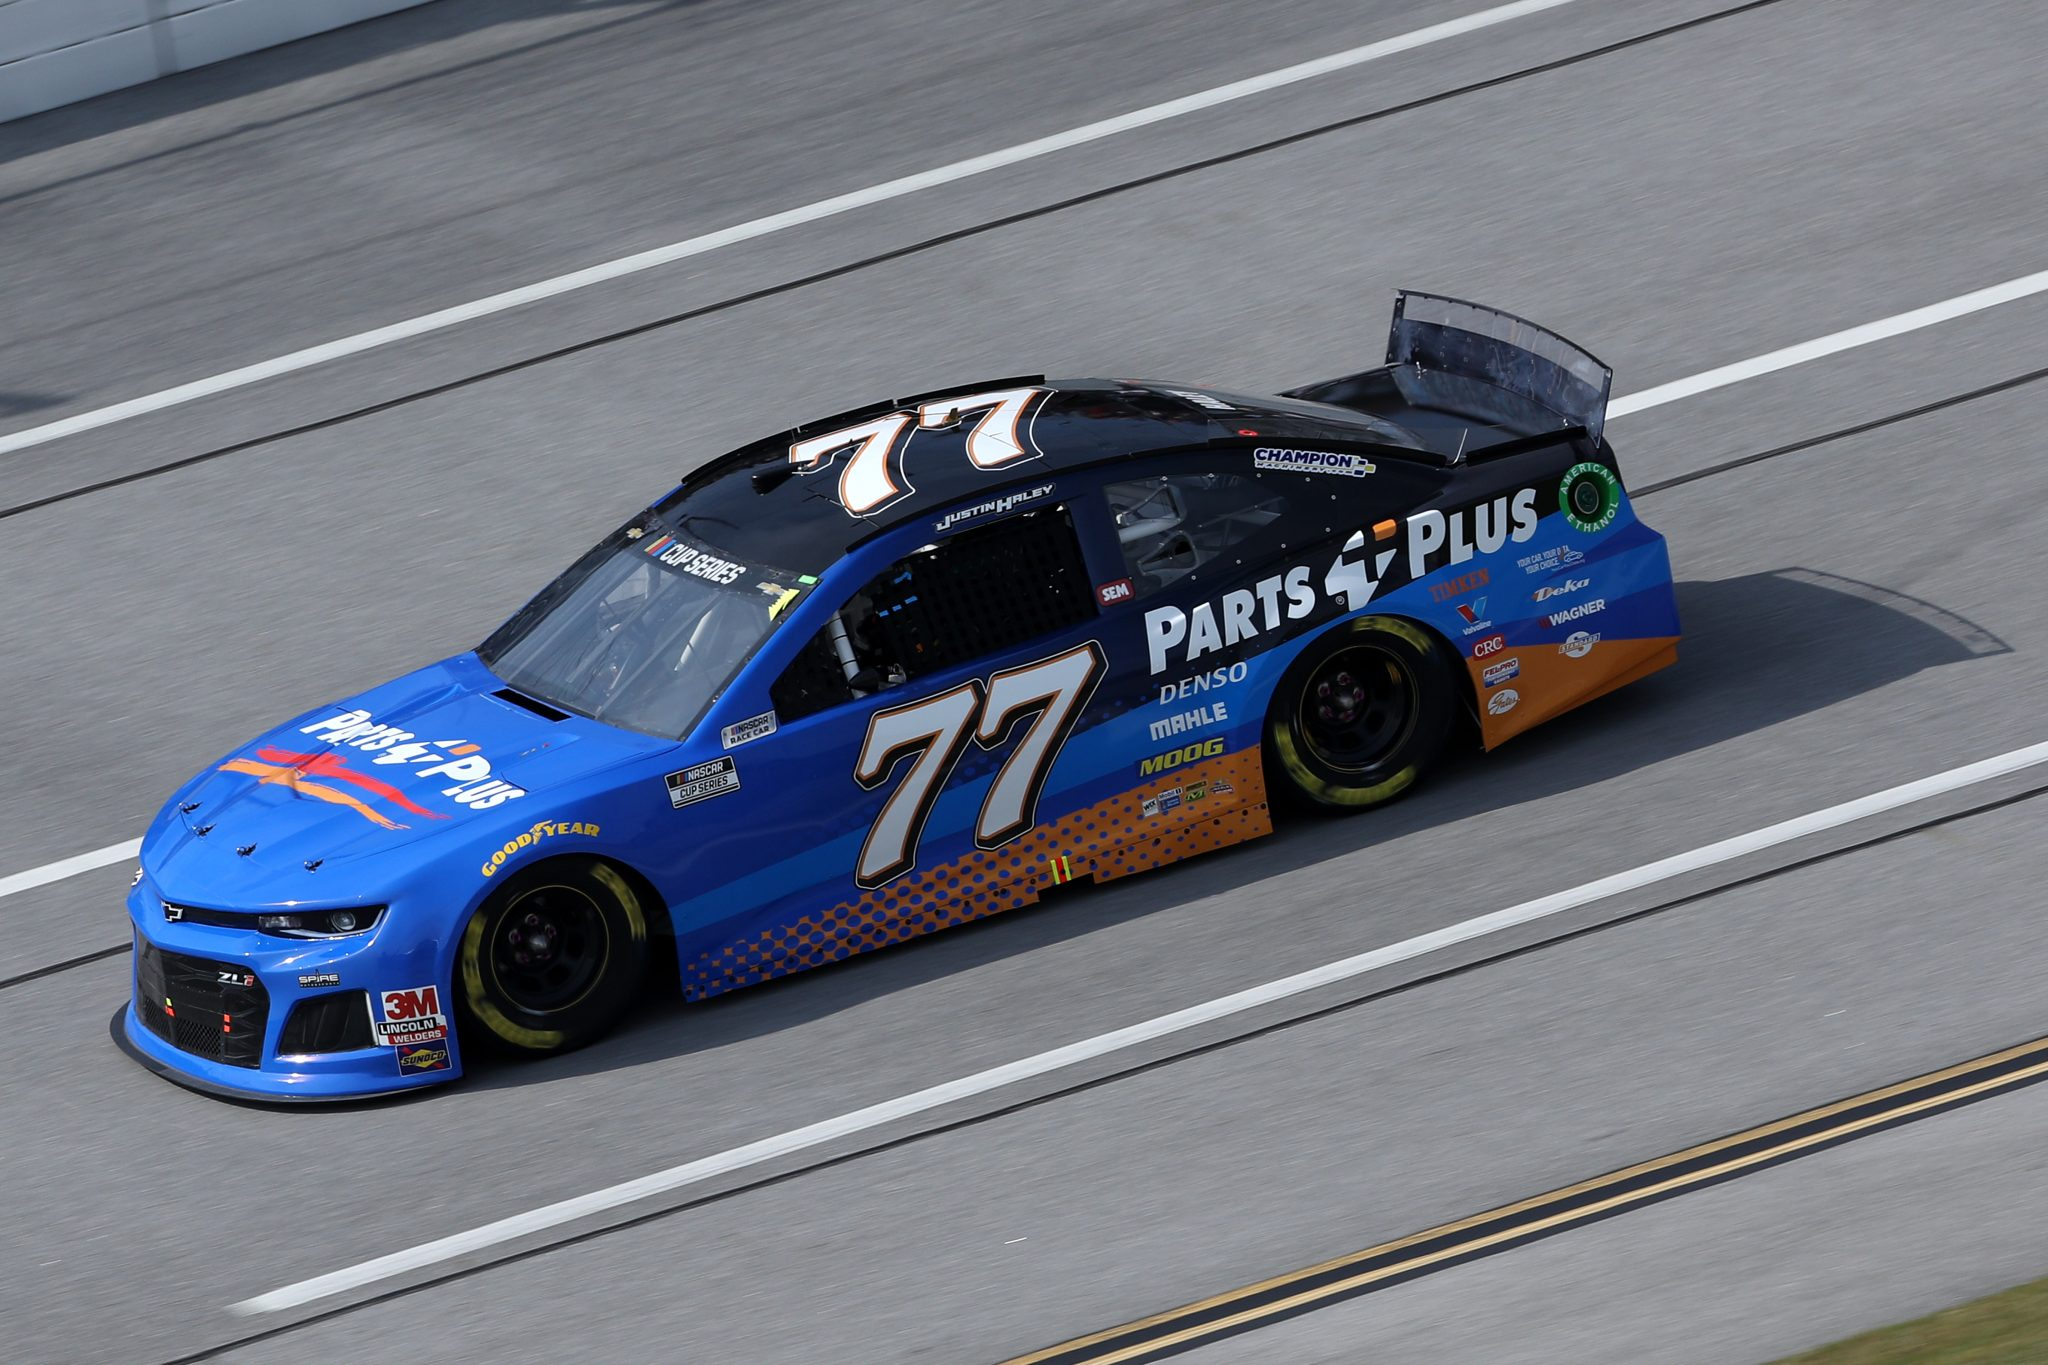 TALLADEGA, ALABAMA - OCTOBER 04: Justin Haley, driver of the #77 Parts Plus Chevrolet, drives during the NASCAR Cup Series YellaWood 500 at Talladega Superspeedway on October 04, 2020 in Talladega, Alabama. (Photo by Chris Graythen/Getty Images) | Getty Images